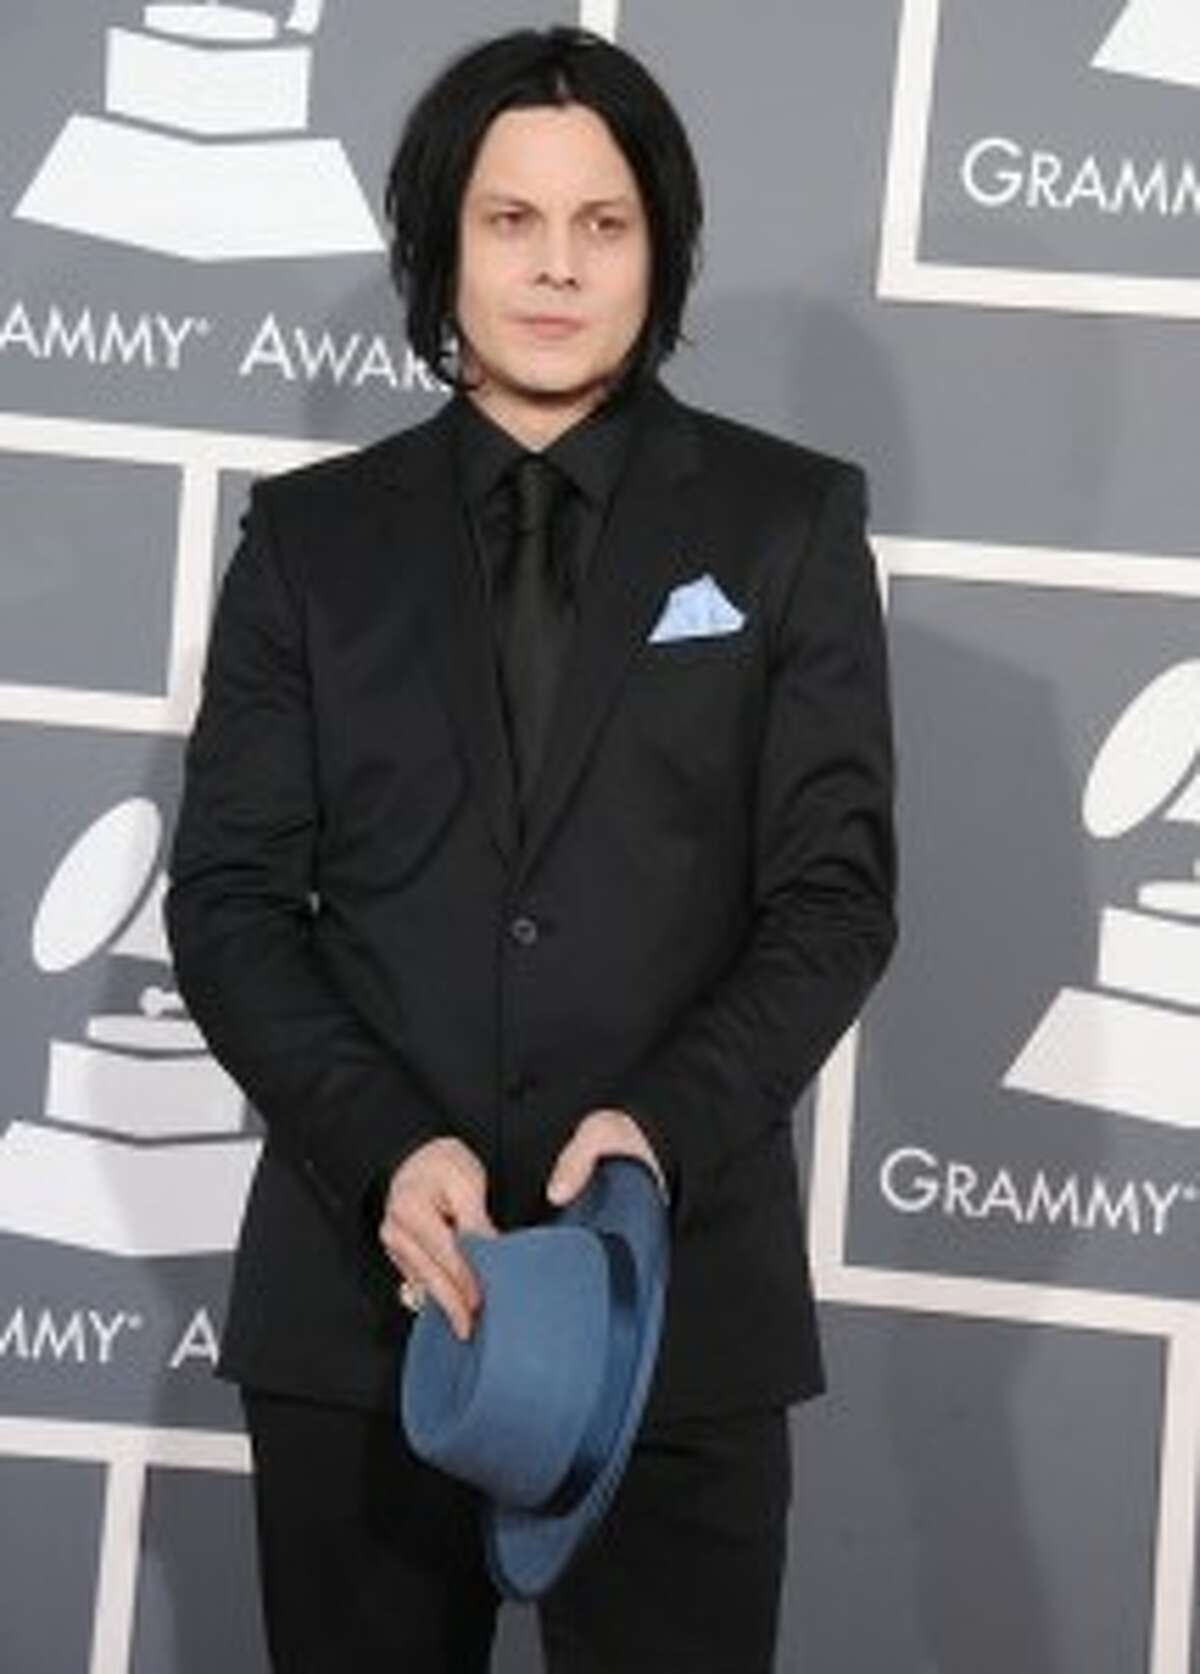 Jack White: Sunday, June 1 at 8:40 p.m.Mars Stage The long, tall rocker is bringing his solo act to Houston, which he hasn't ventured to since a May 2010 Dead Weather gig at the House Of Blues. Will he melt in the Houston sun? The betting starts now.